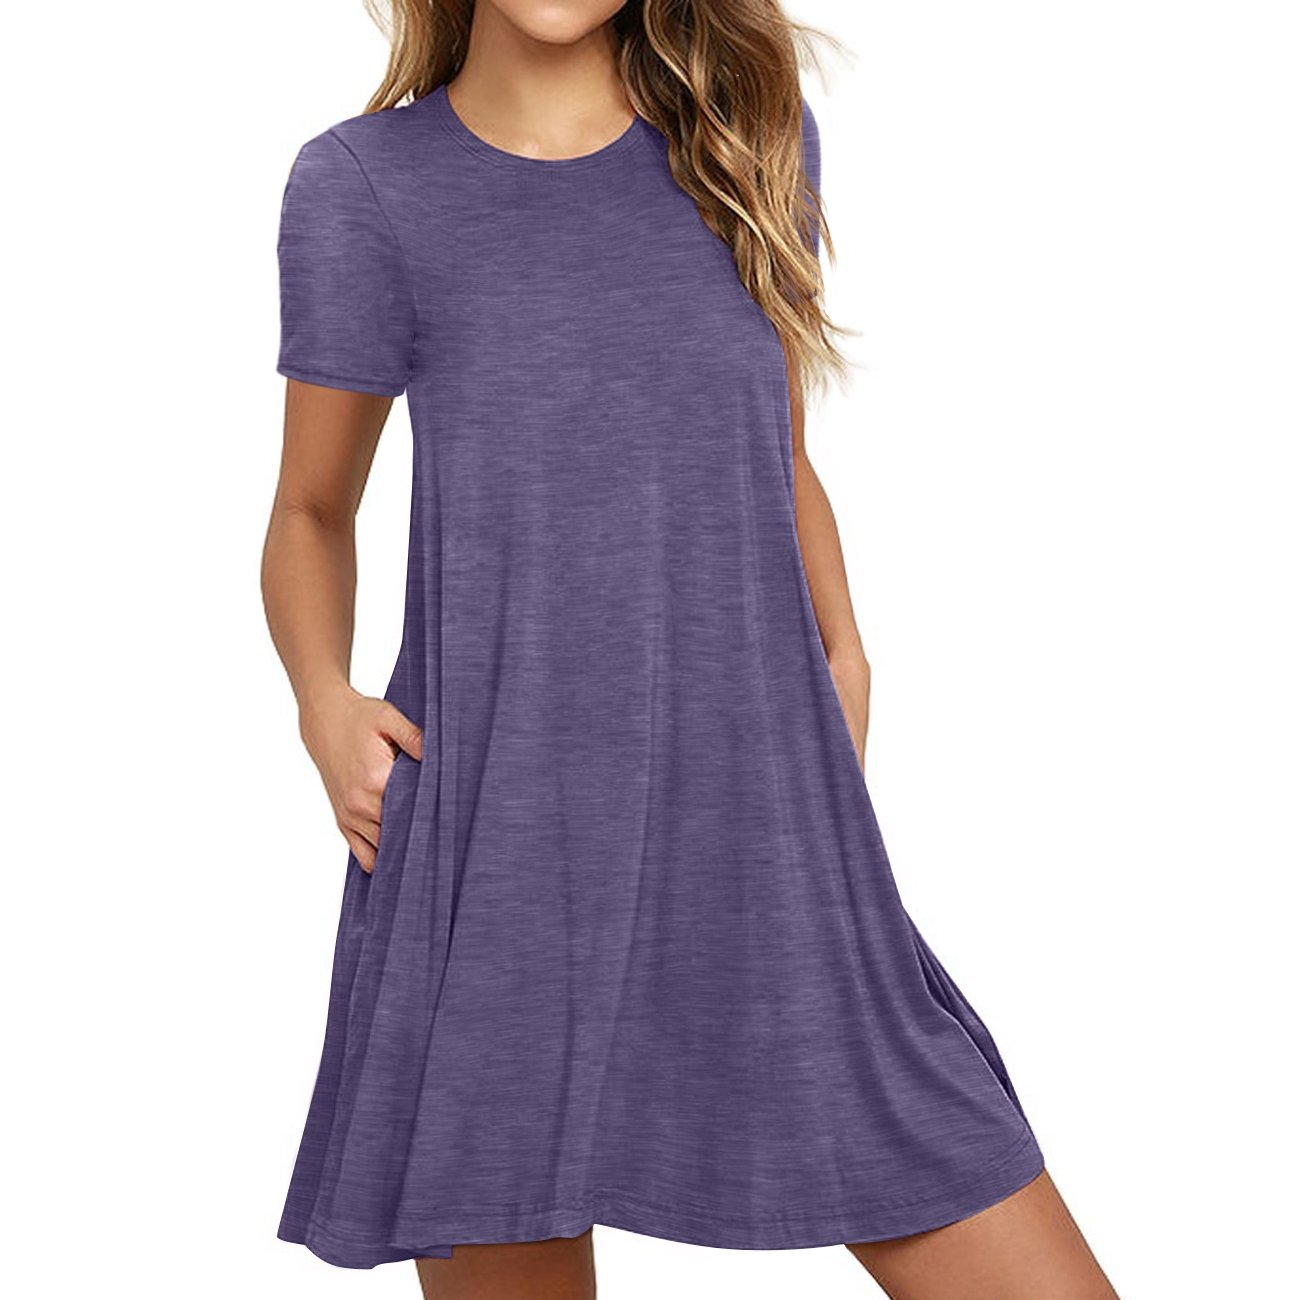 Naokenu Women Short Sleeve Swing Dress with Pockets Casual Loose T-Shirt Dress(S,Purple Gray)